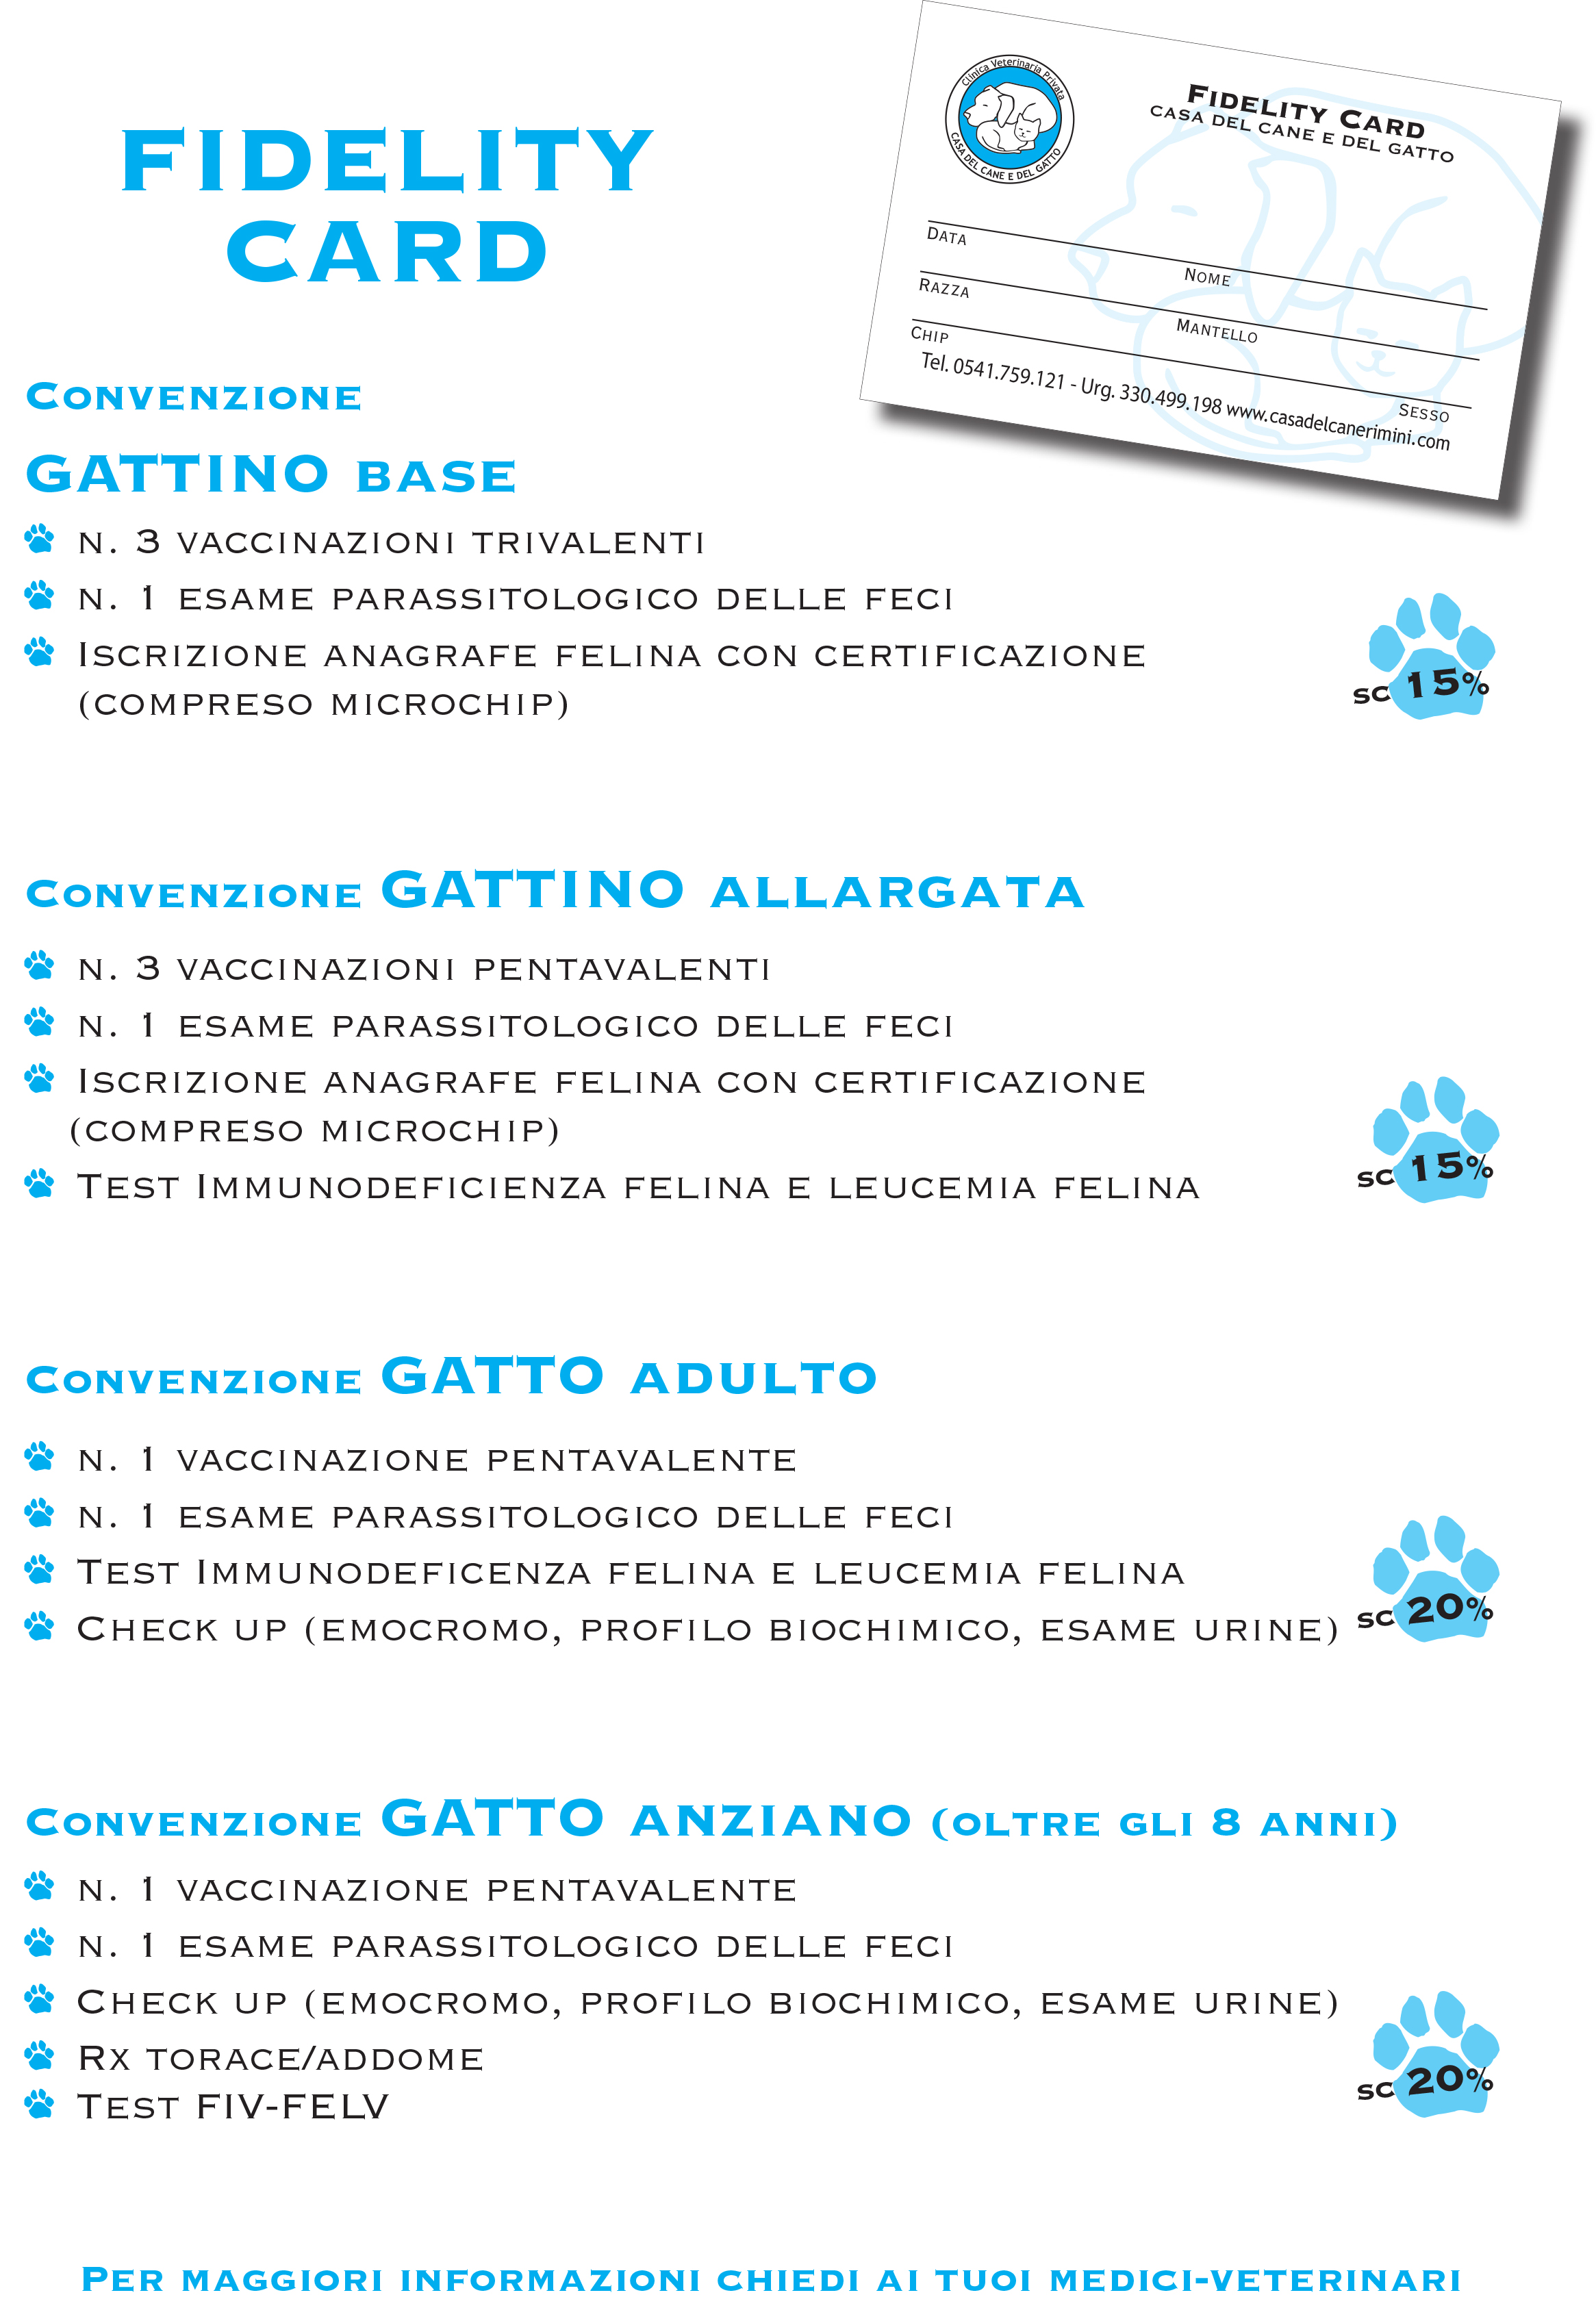 FIDELITY-CARD-GATTO-1